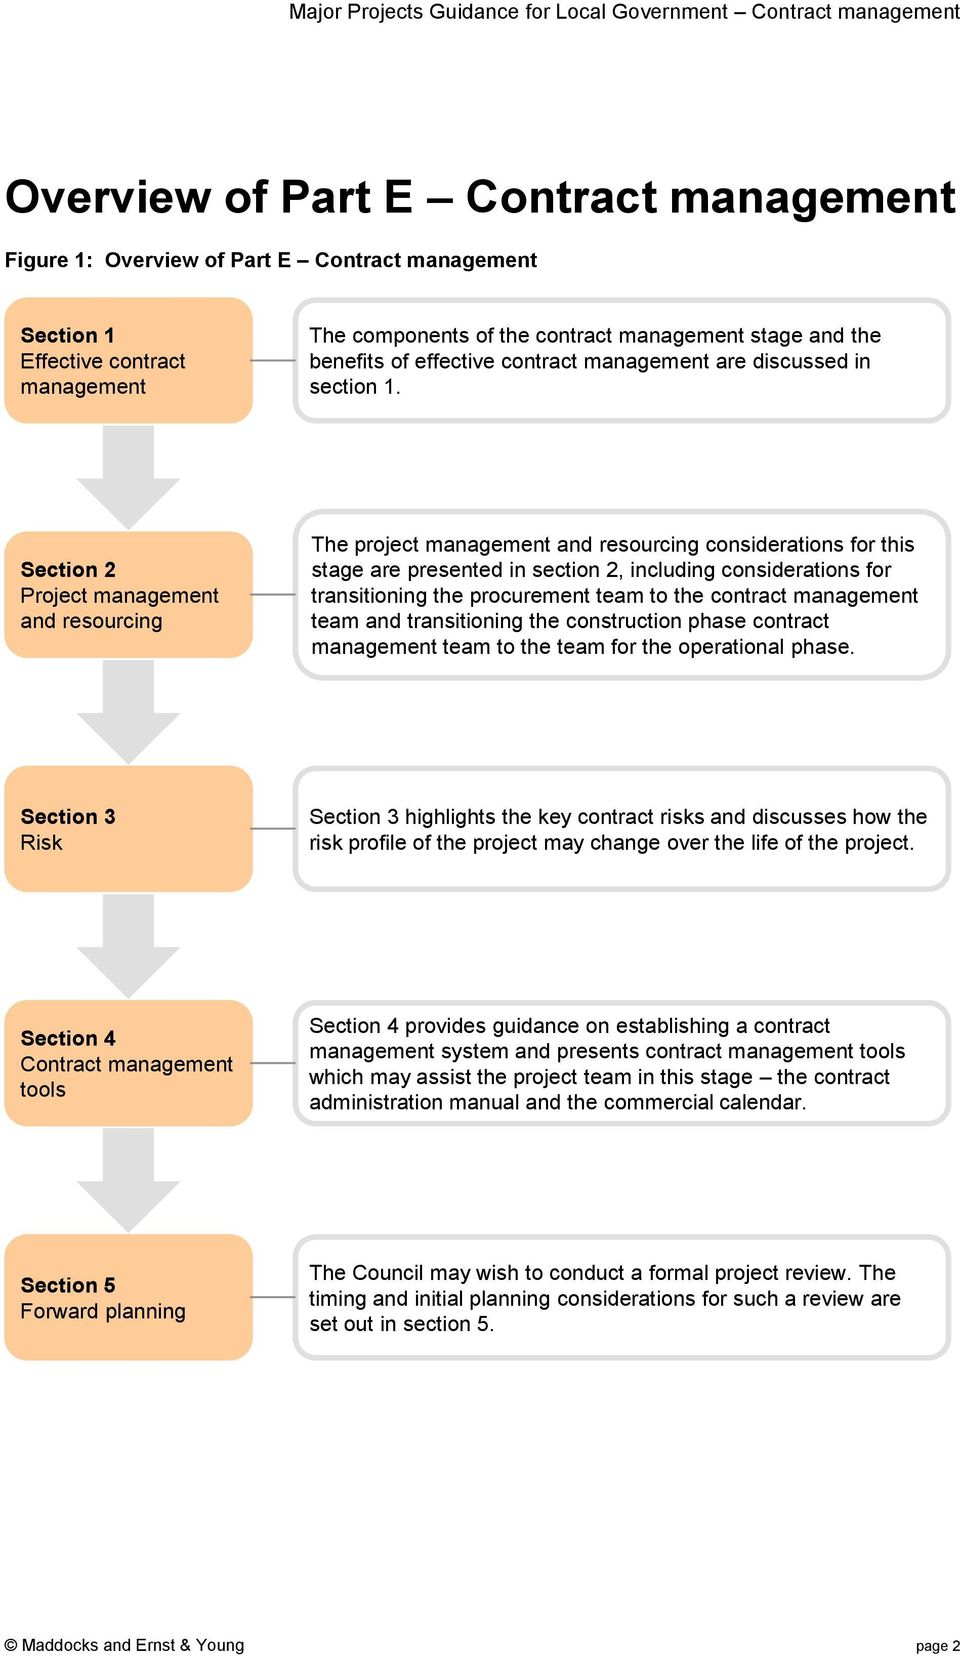 Section 2 Project management and resourcing The project management and resourcing considerations for this stage are presented in section 2, including considerations for transitioning the procurement